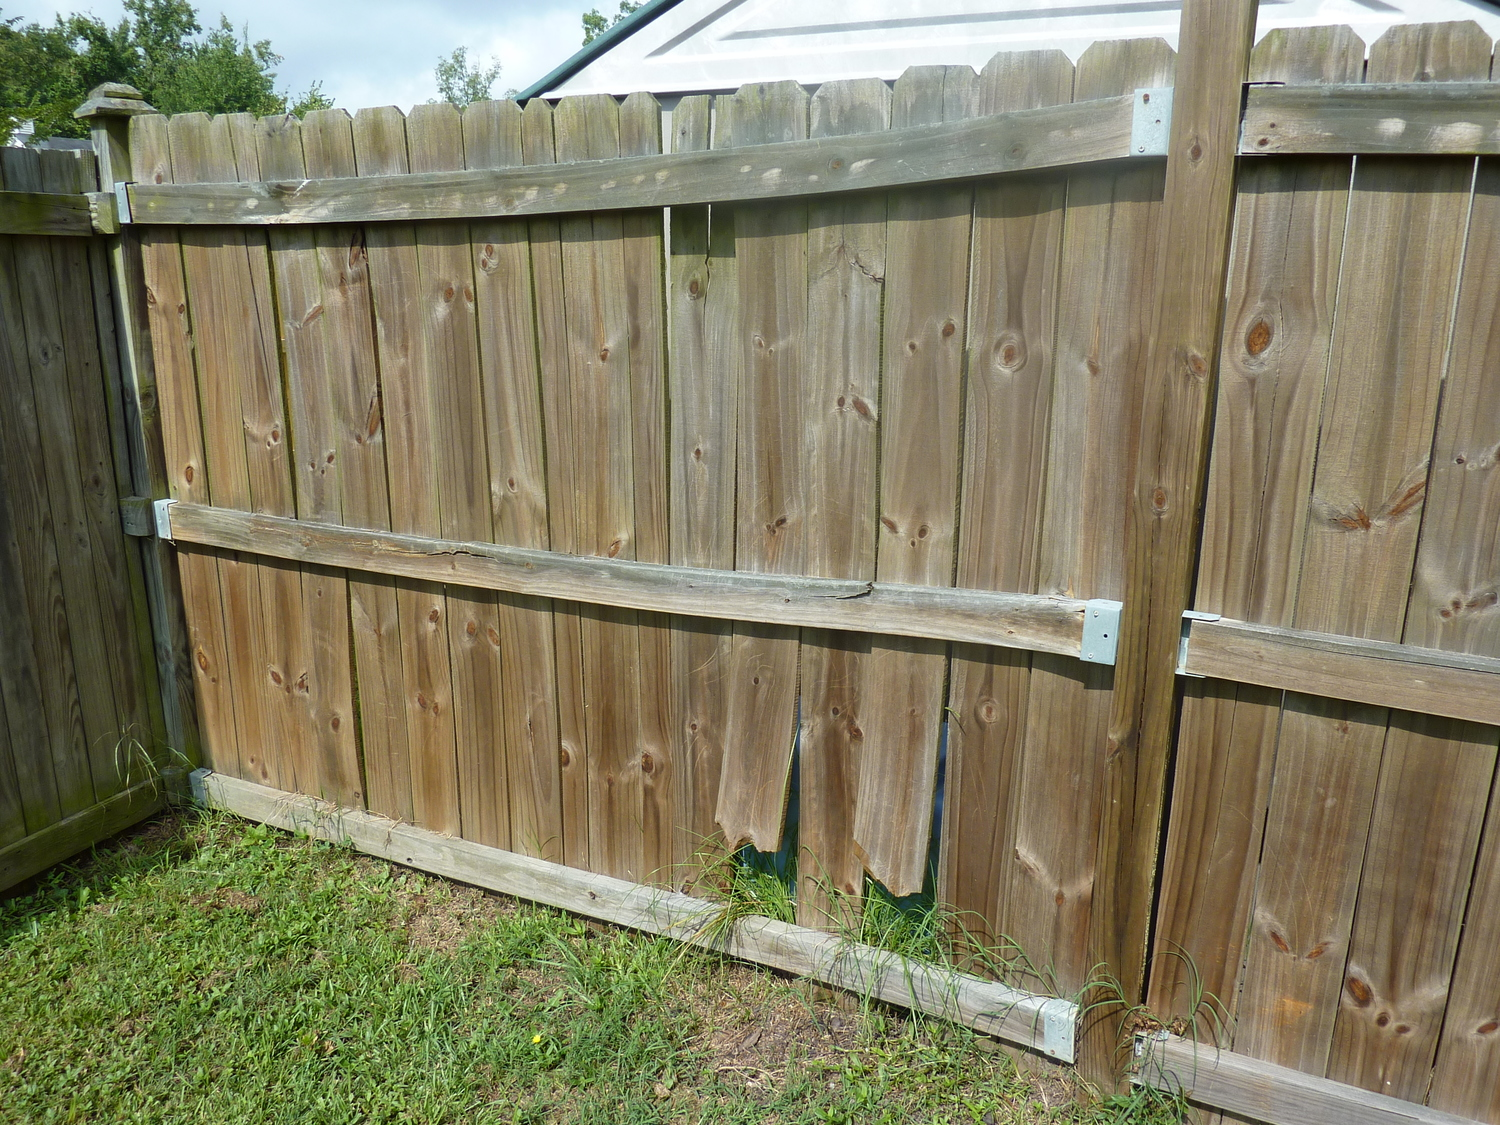 Why Is My Wood Fence Warping, Twisting, Moving, Shrinking And